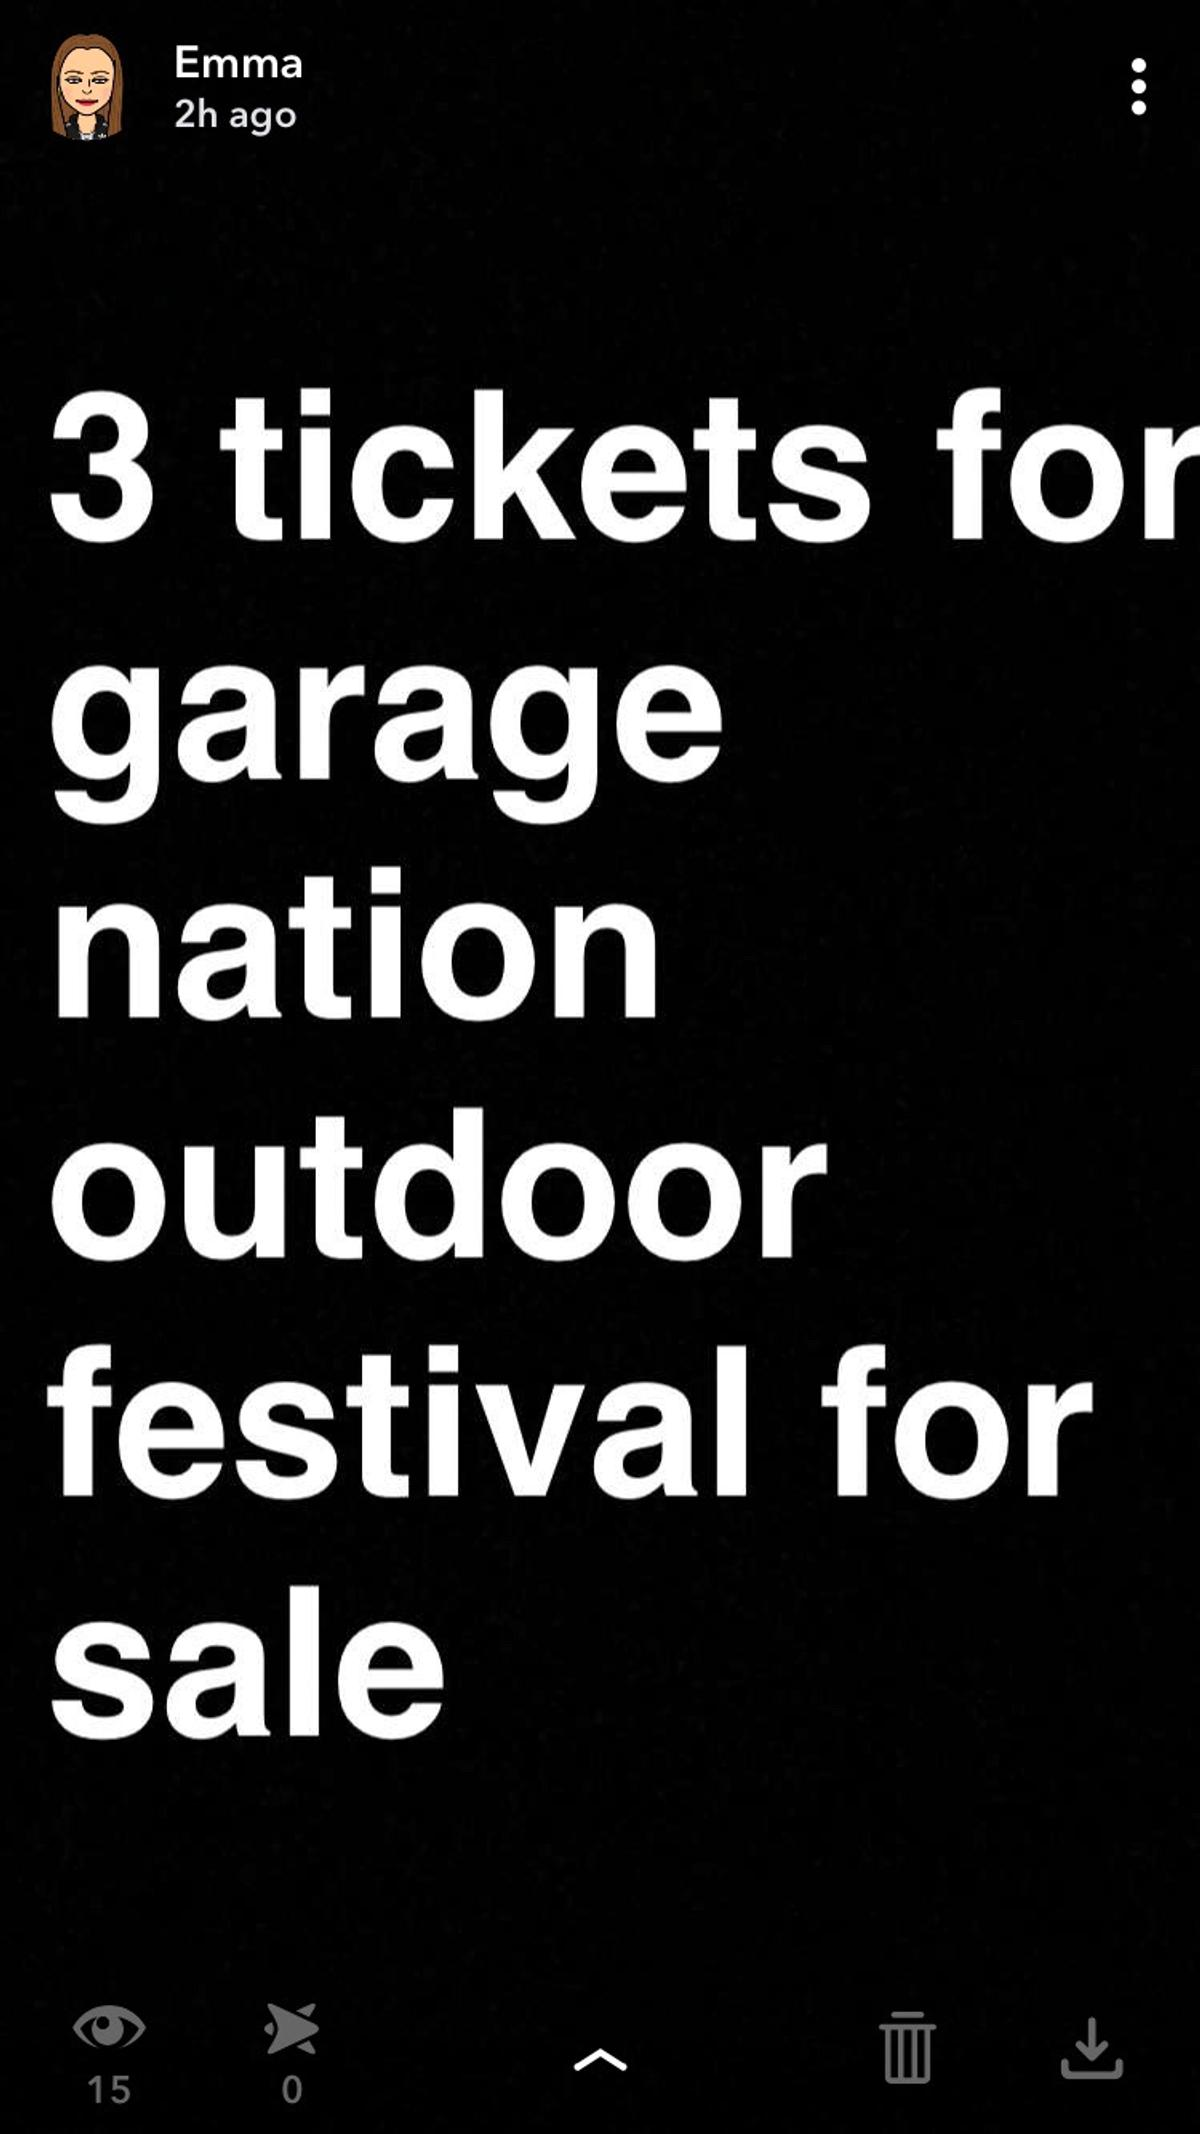 Outdoor Garage Nation Festival In Tw4 Thames For 45 00 For Sale